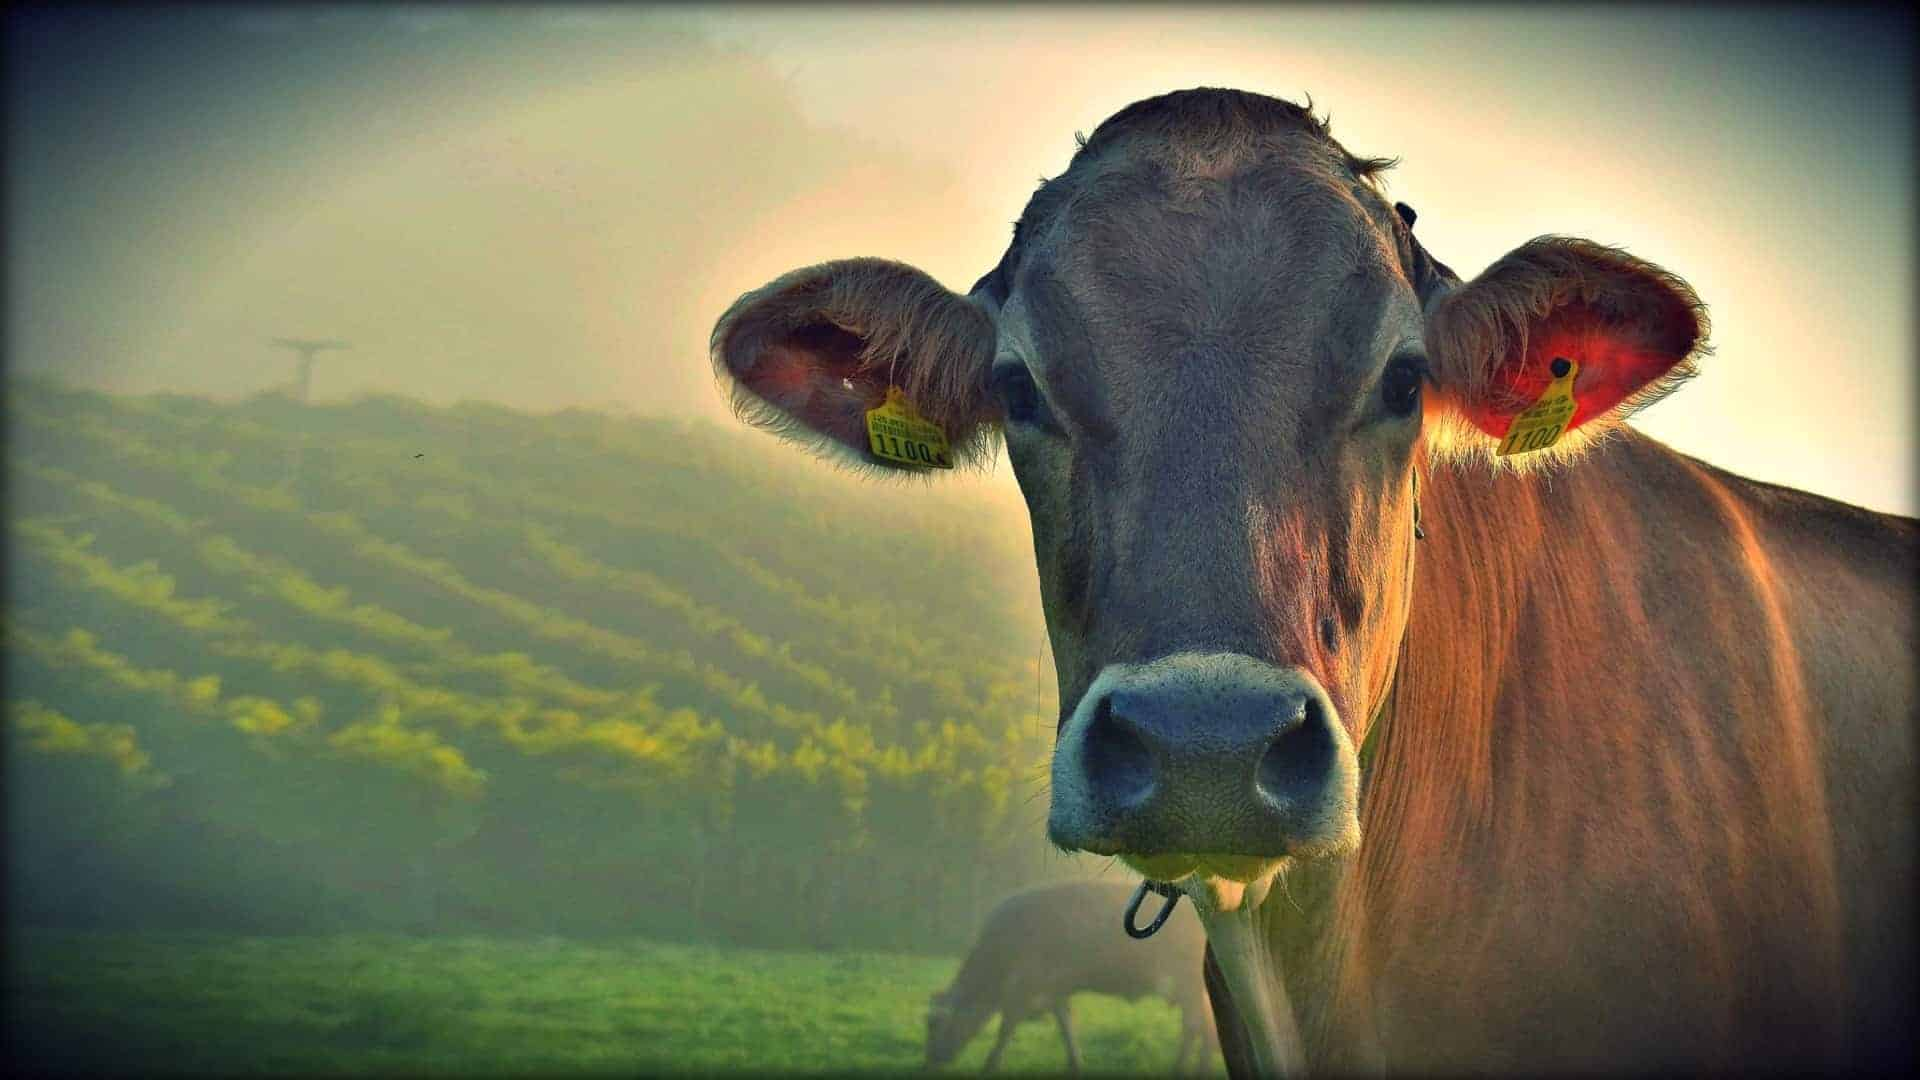 brown cow standing in a green field facing camera